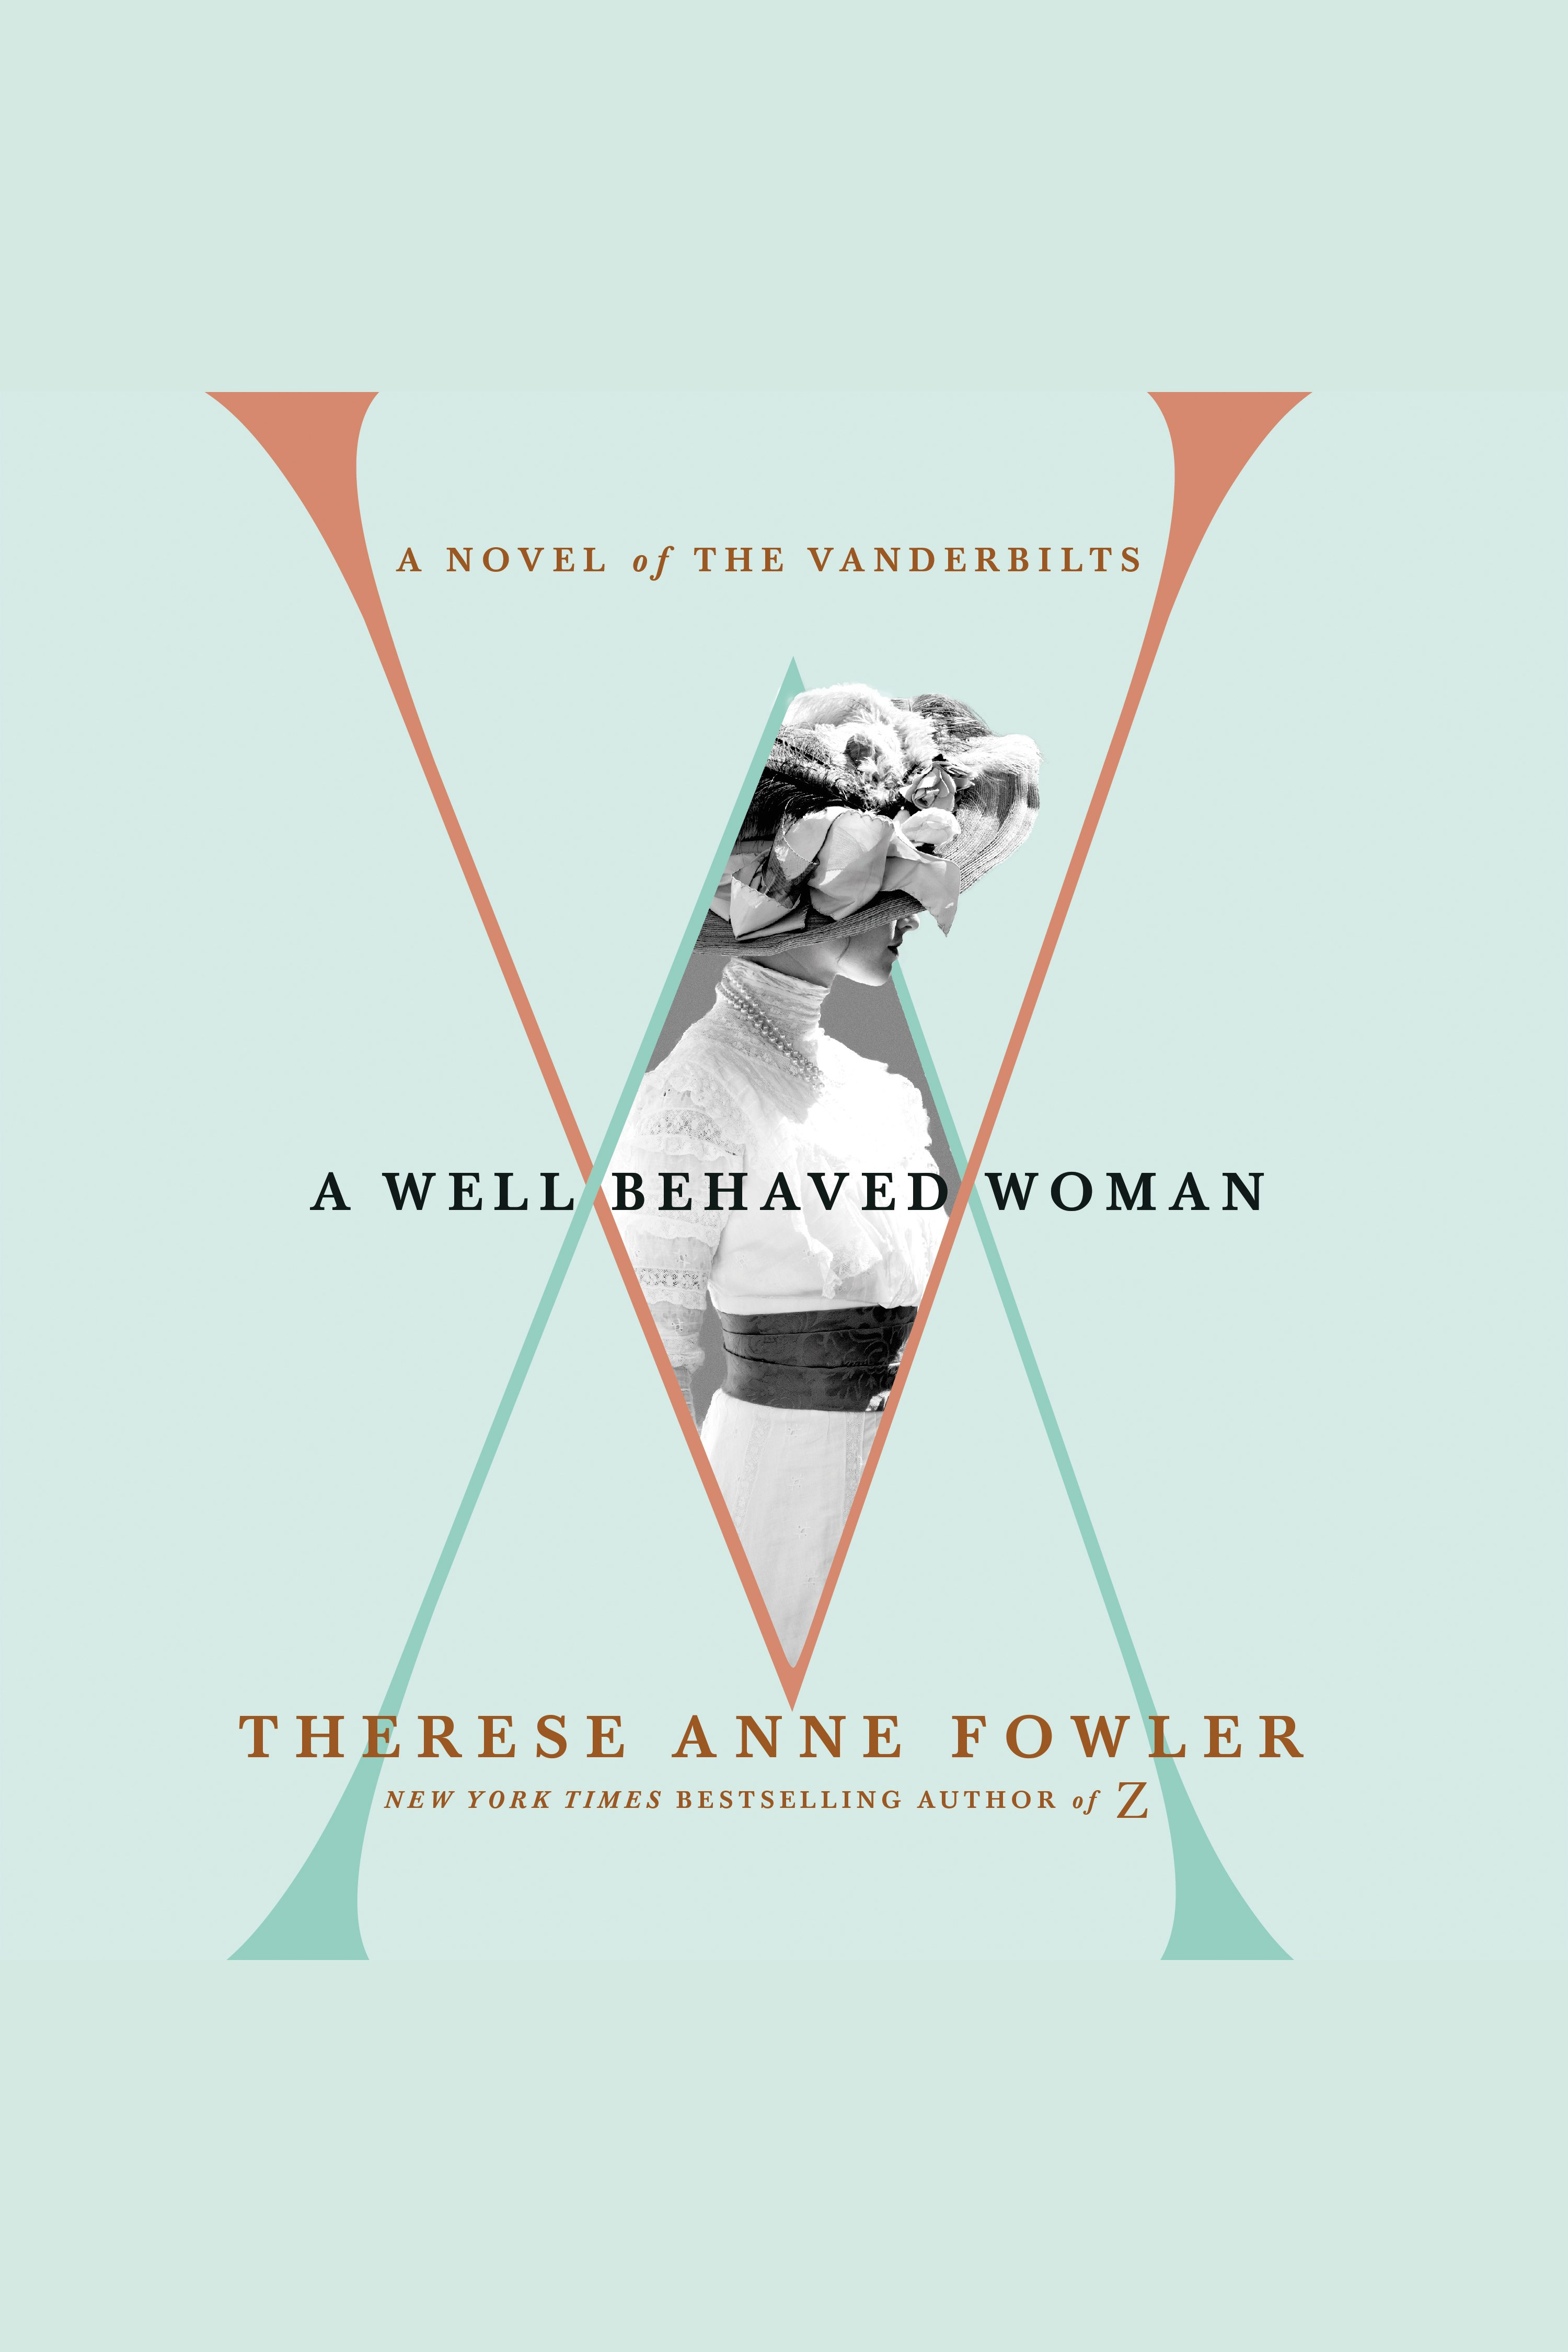 A well-behaved woman a novel of the Vanderbilts cover image